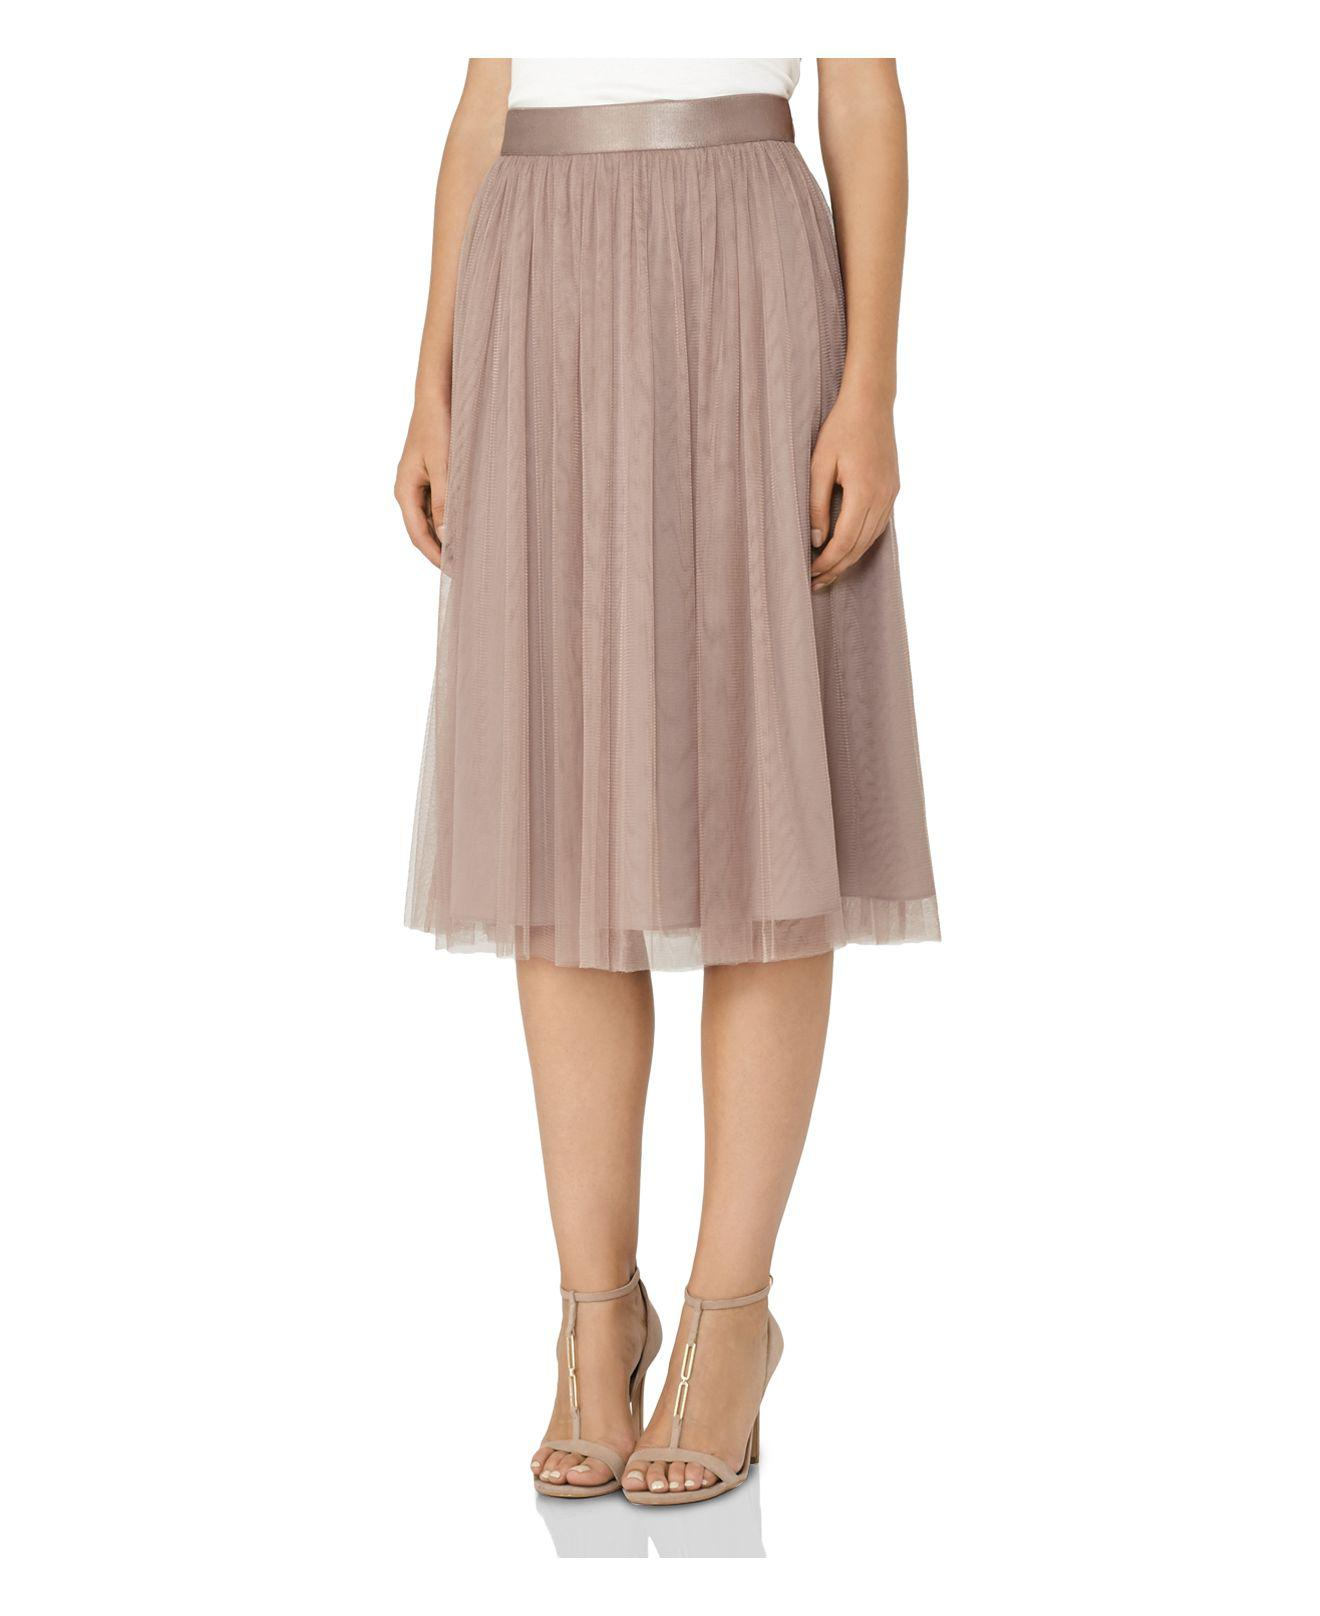 91799e482d Gallery. Previously sold at: Bloomingdale's · Women's Tulle Skirts